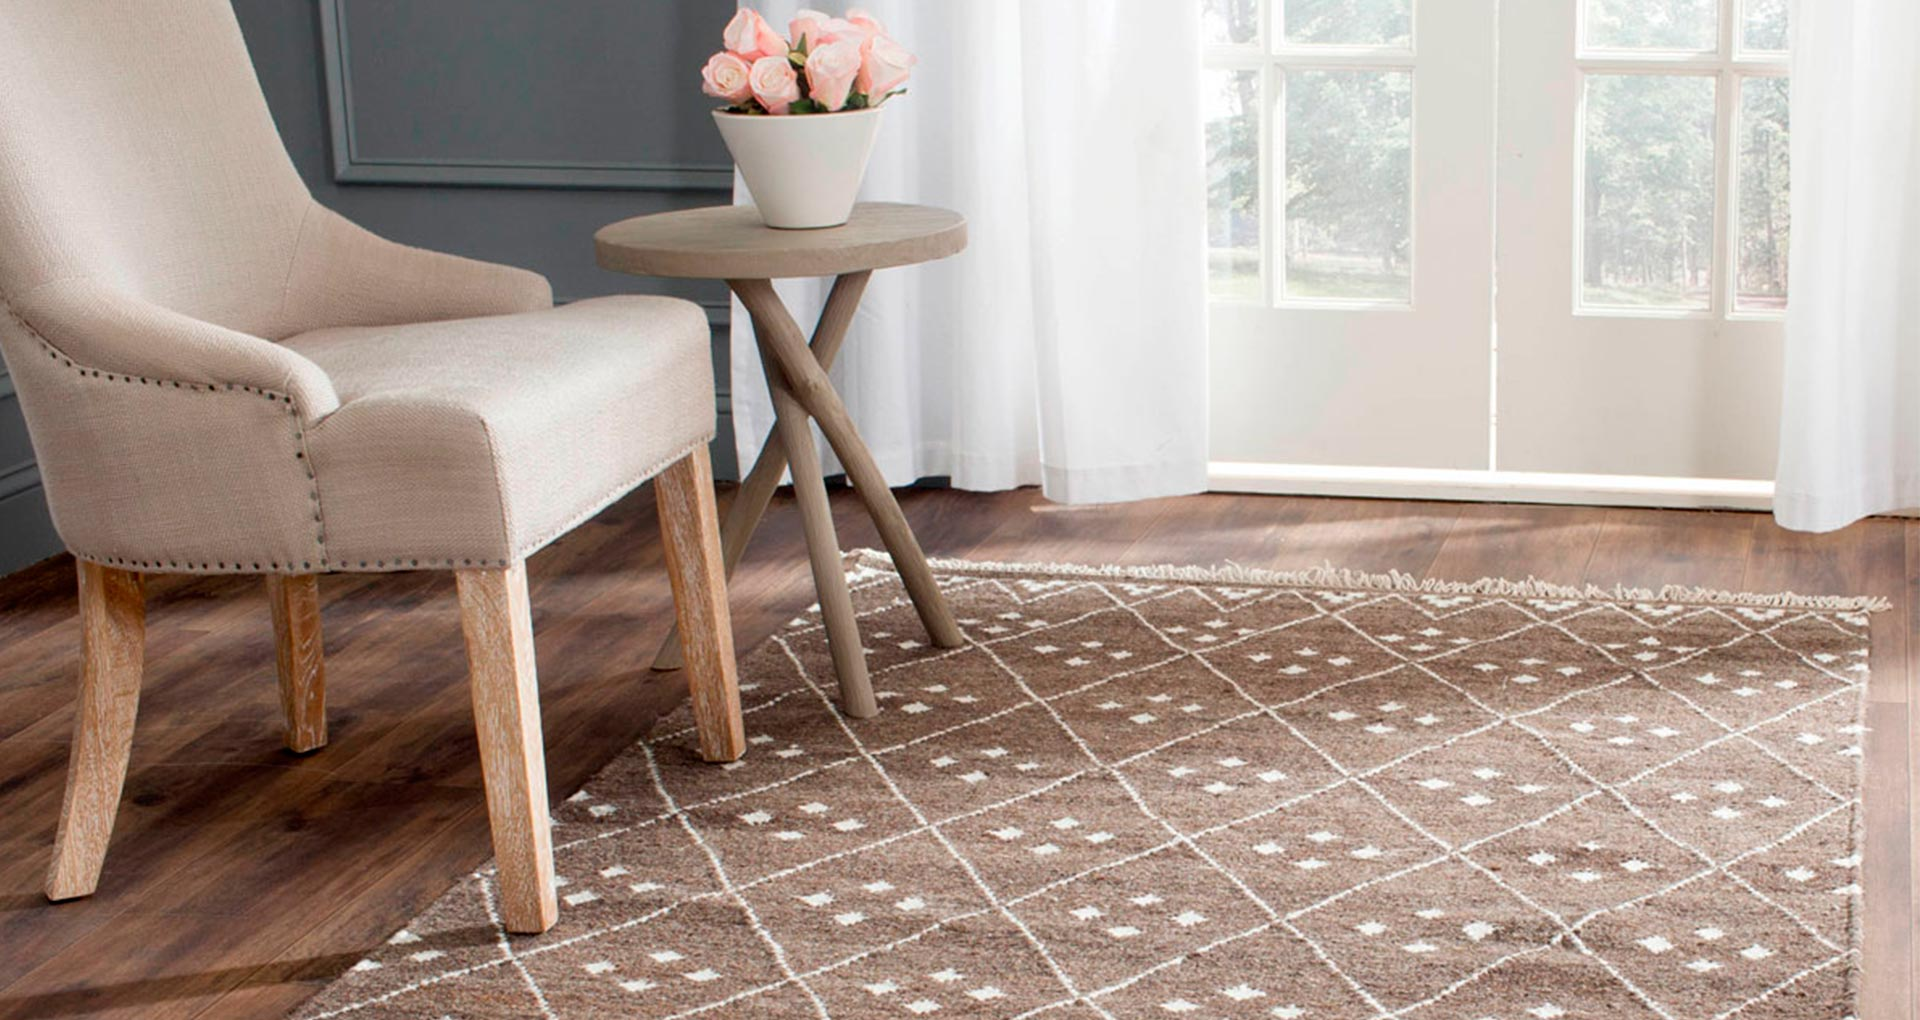 Why Invest in a Handmade Area Rug | Rug Sales Orange County | Orange County Rug Sales Company